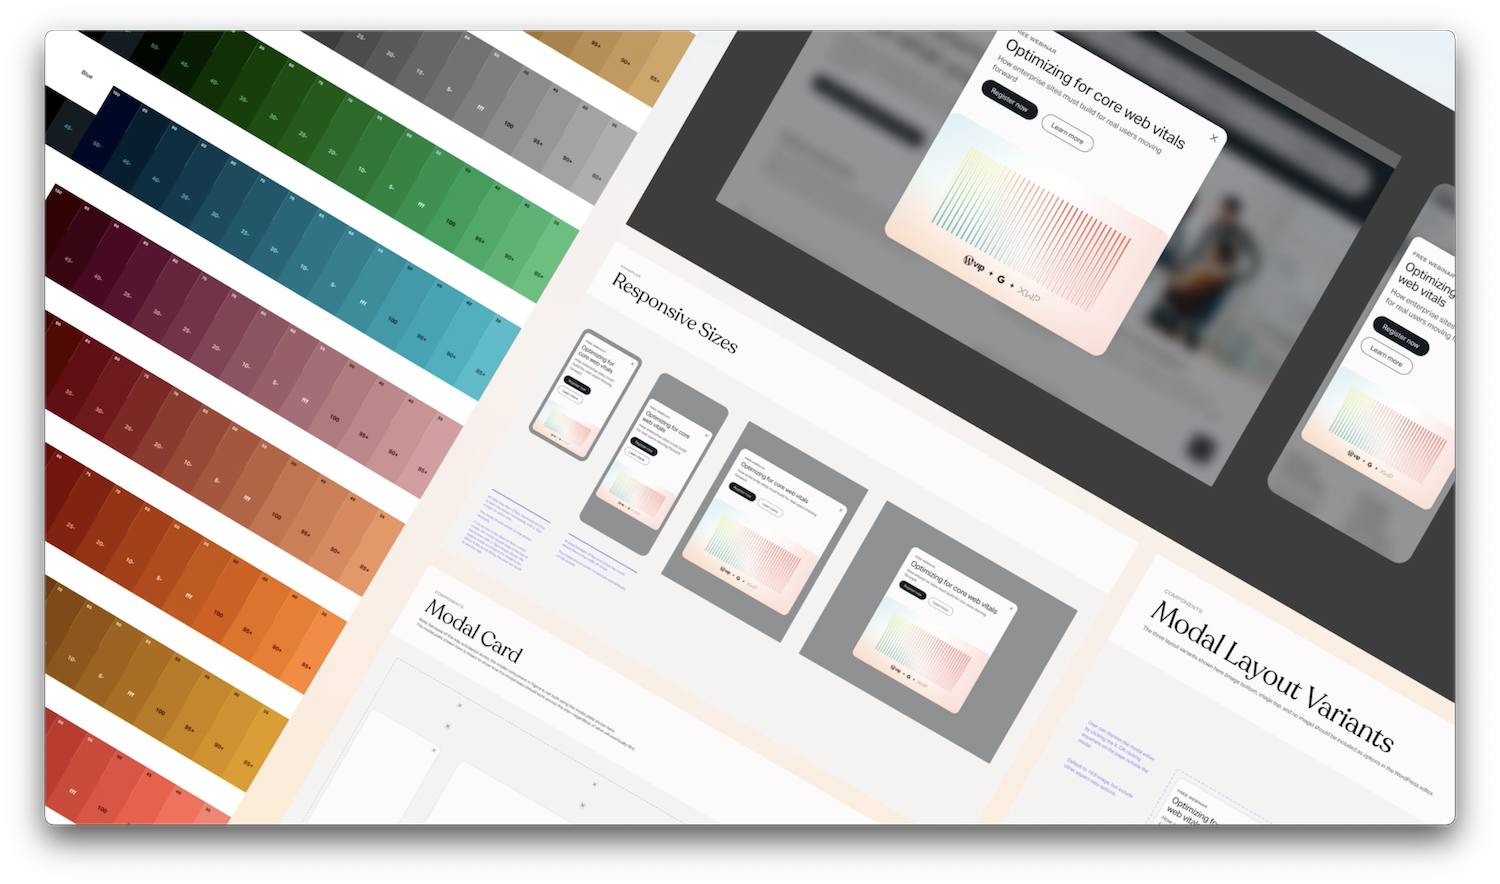 A look at the WordPress VIP design system